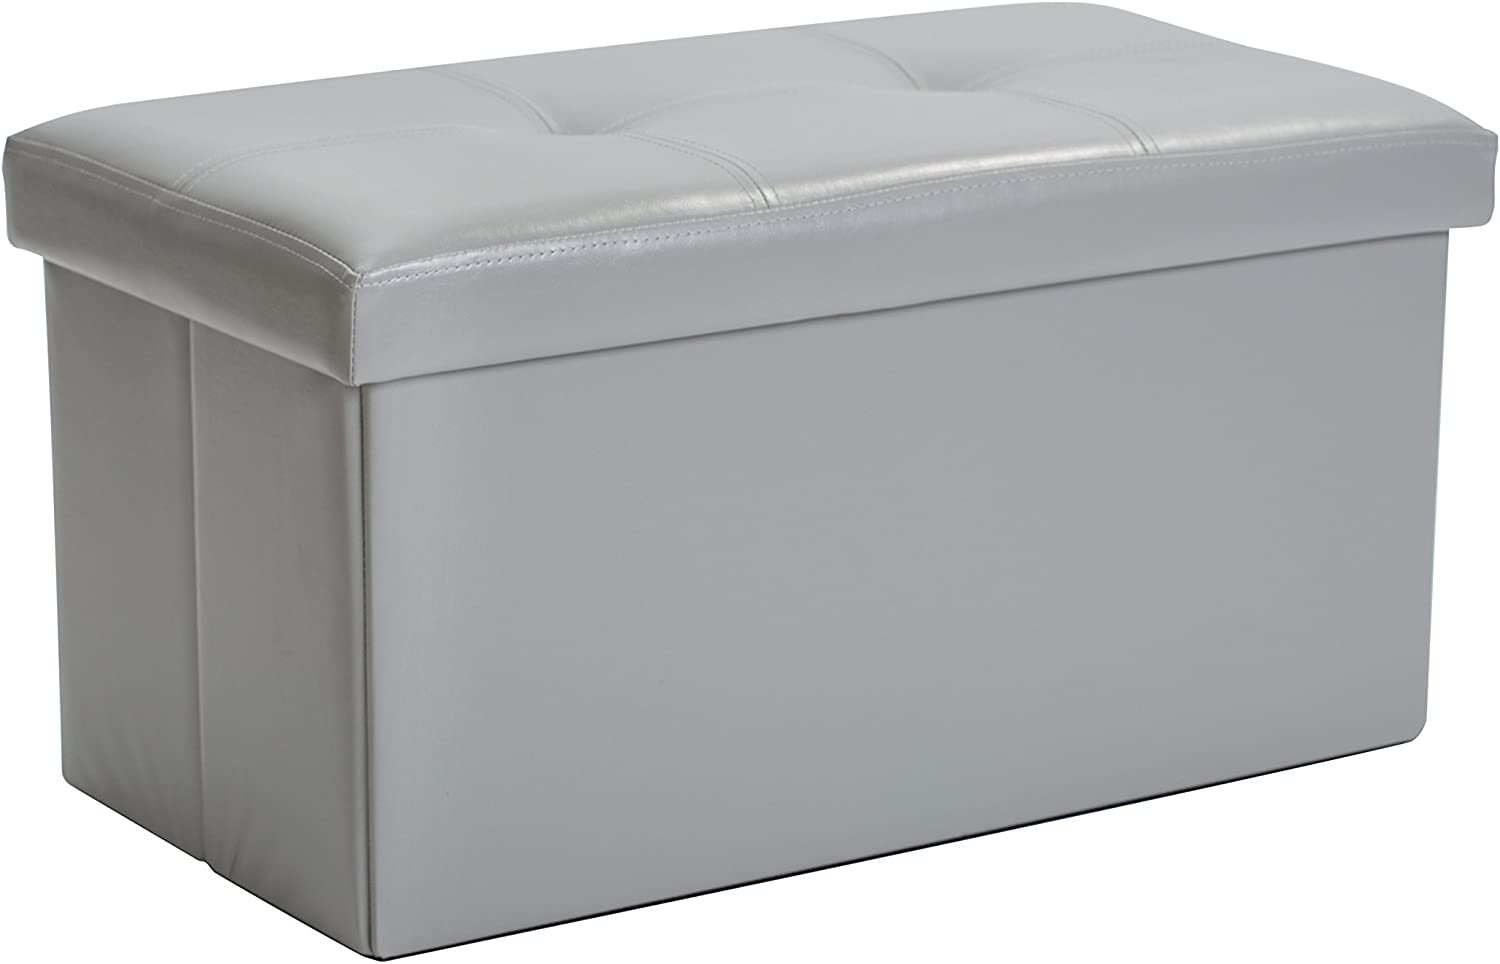 Simplify Folding Storage Ottoman, Toy Box Chest, Faux Leather,Tufted Padded Seating, Bench, Foot Rest, Stool, Double, Grey